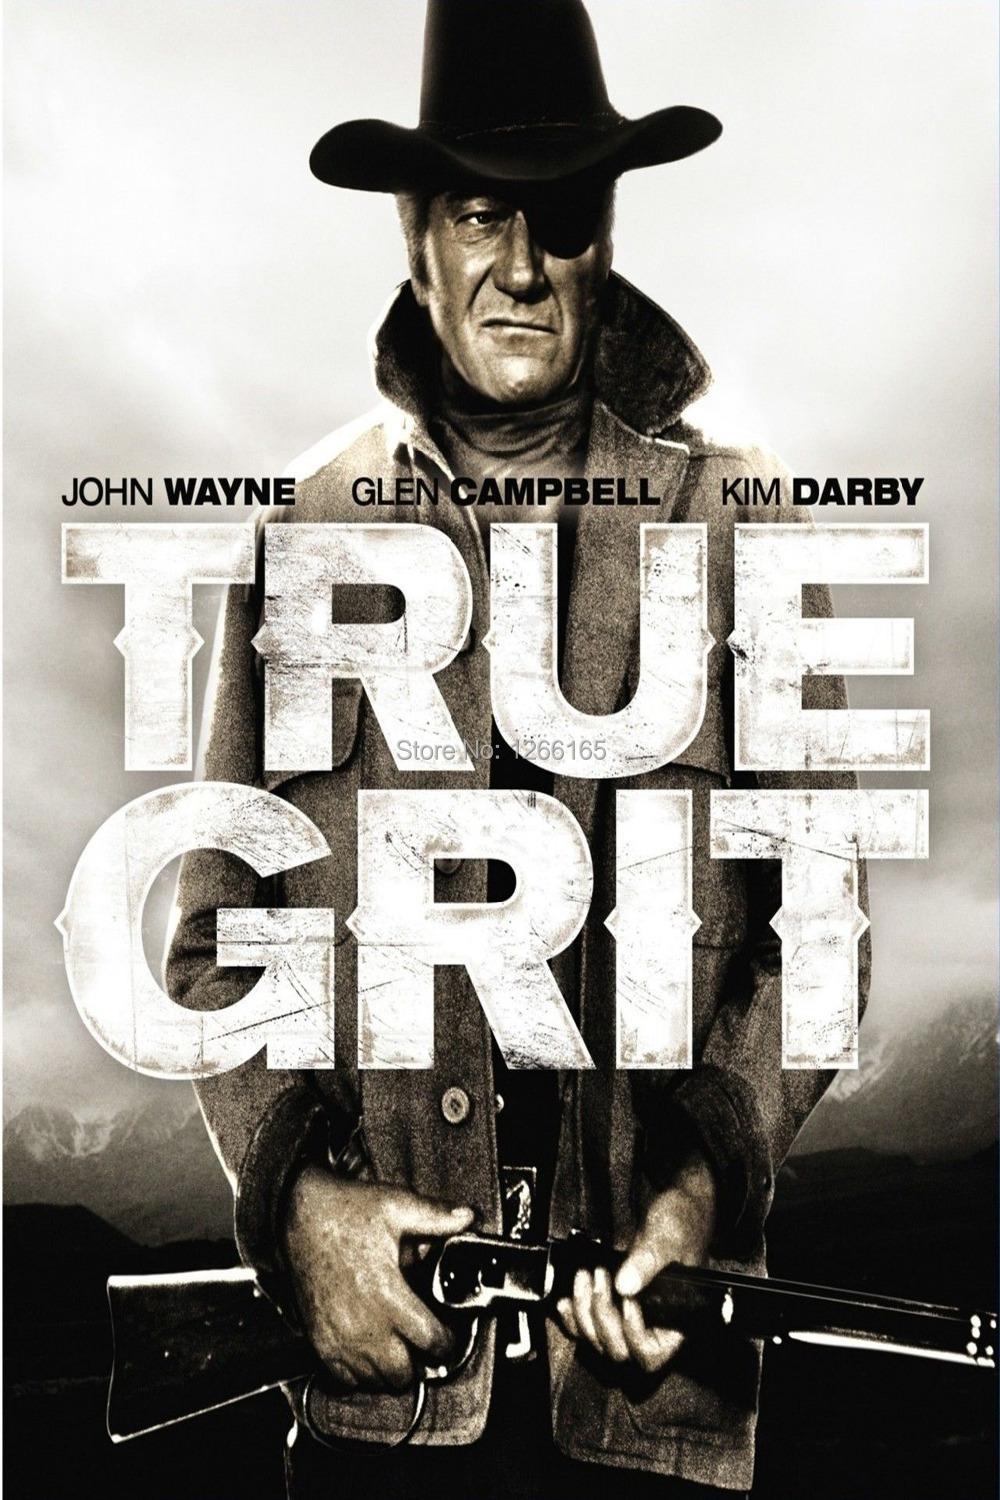 TRUE GRIT Movie Poster RARE John Wayne Western Print Silk poster Home Decoration 12x18 24x36 inch